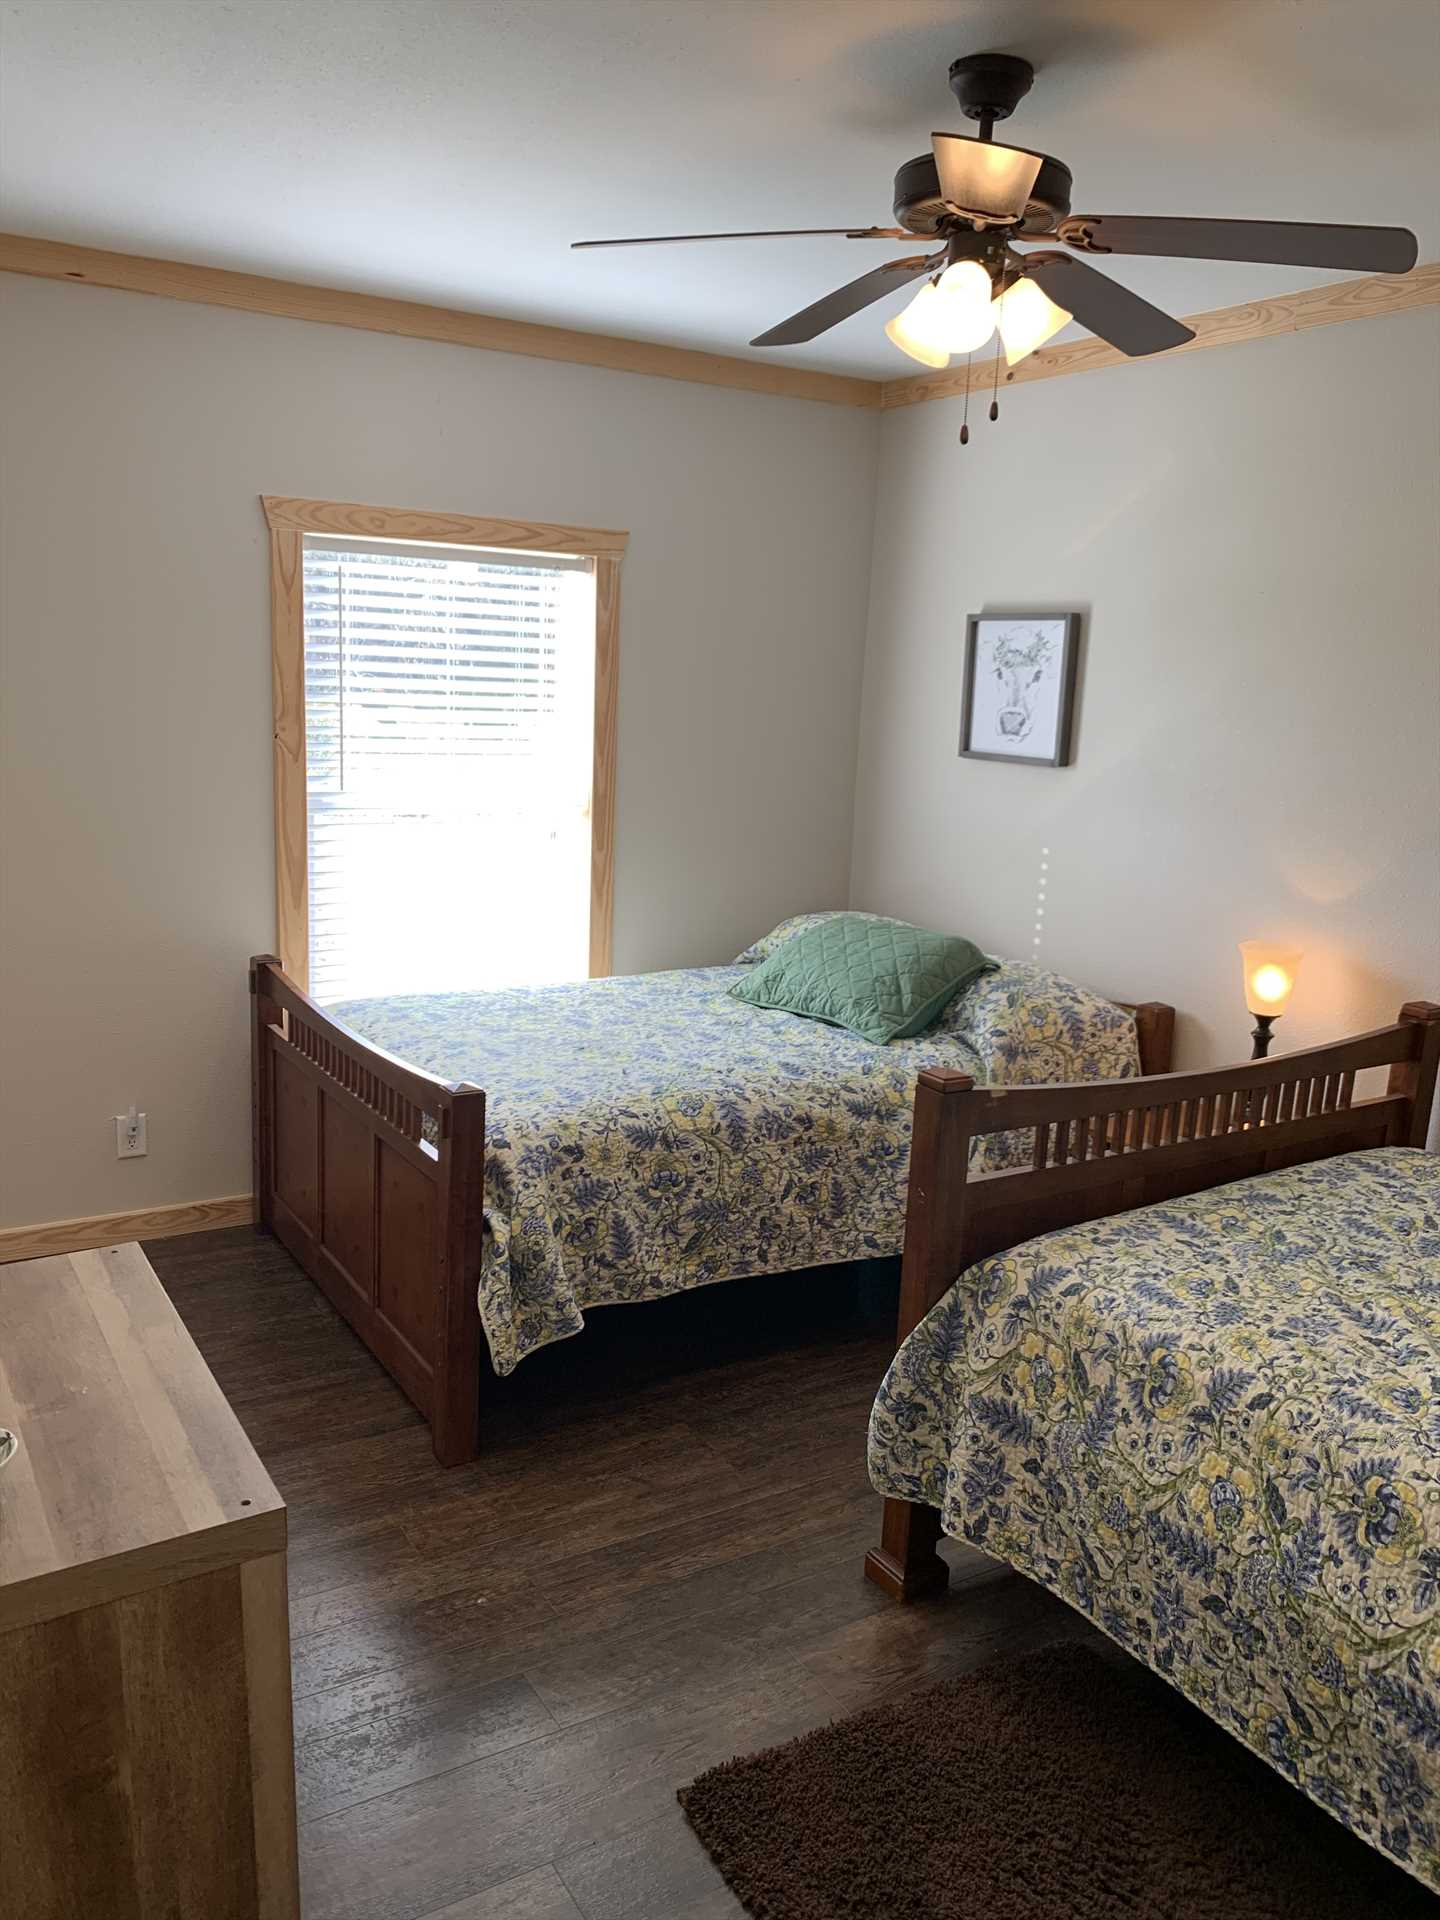 Two big double beds in the second bedroom offer sweet slumber for up to four guests. Fluffy bed linens are provided for all our visitors!